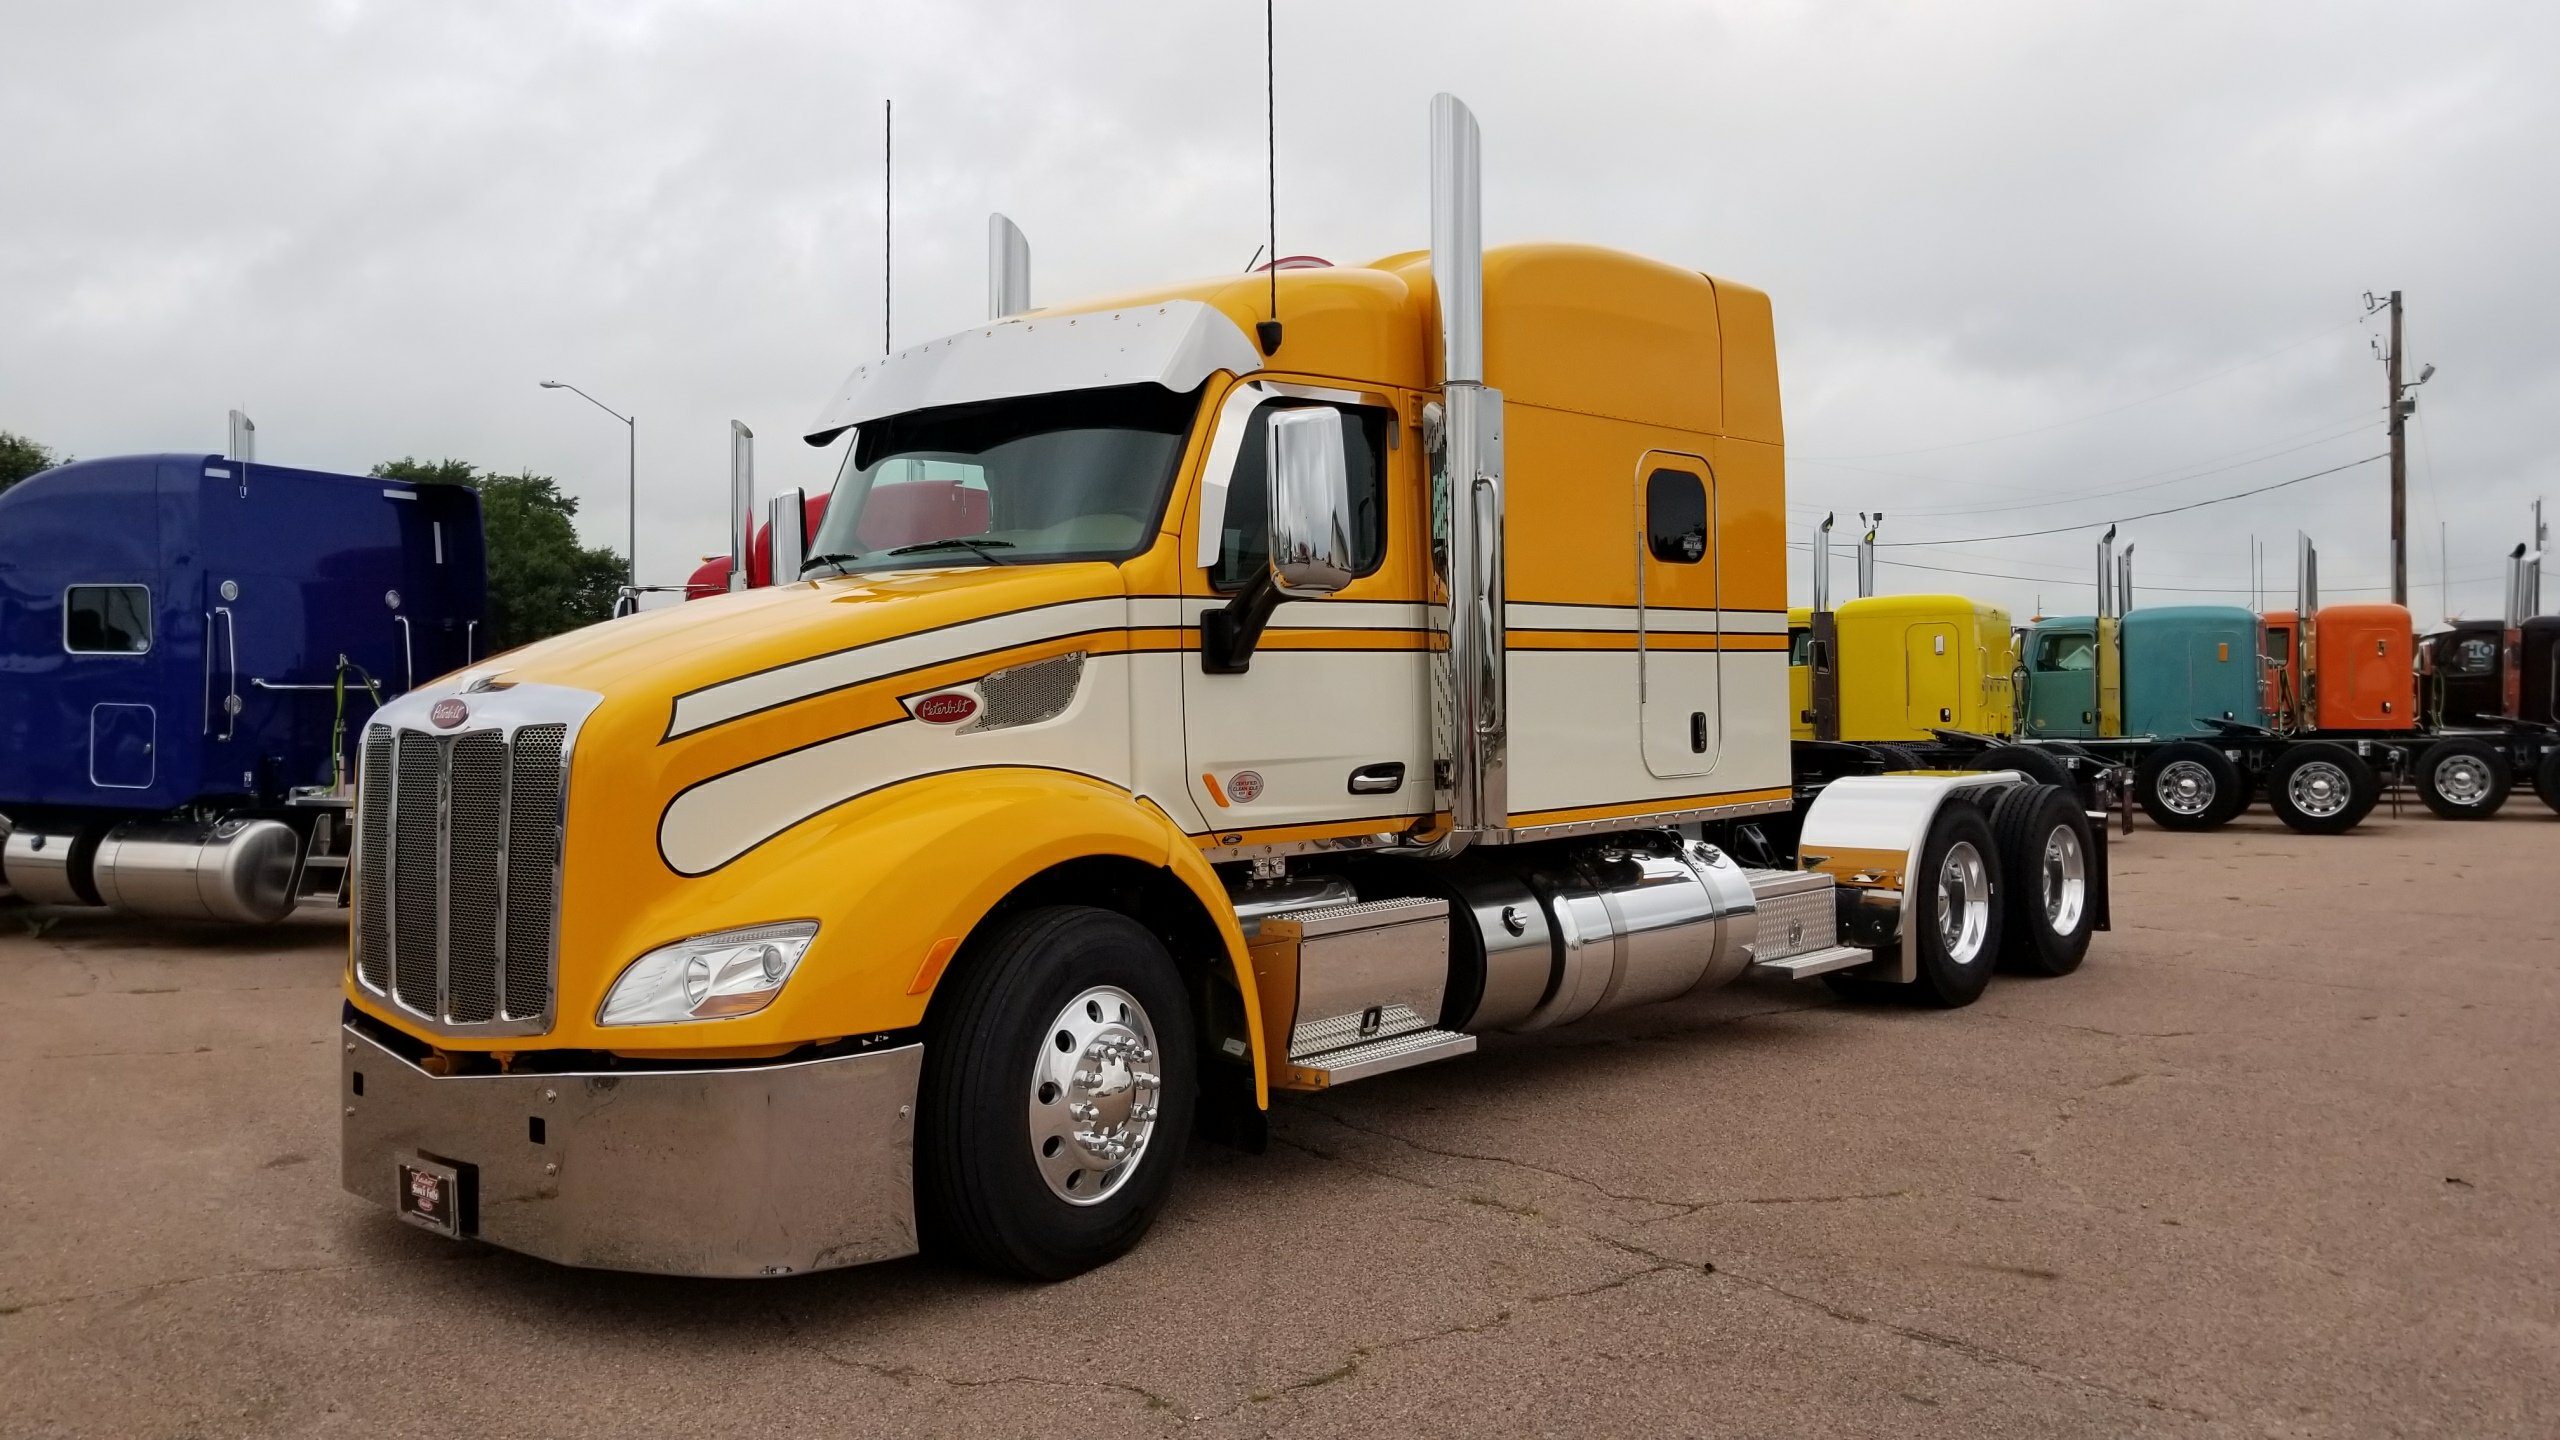 Wallpaper Stores In Sioux Falls Sd Custom Painted 579 Ready To Go Peterbilt Of Sioux Falls